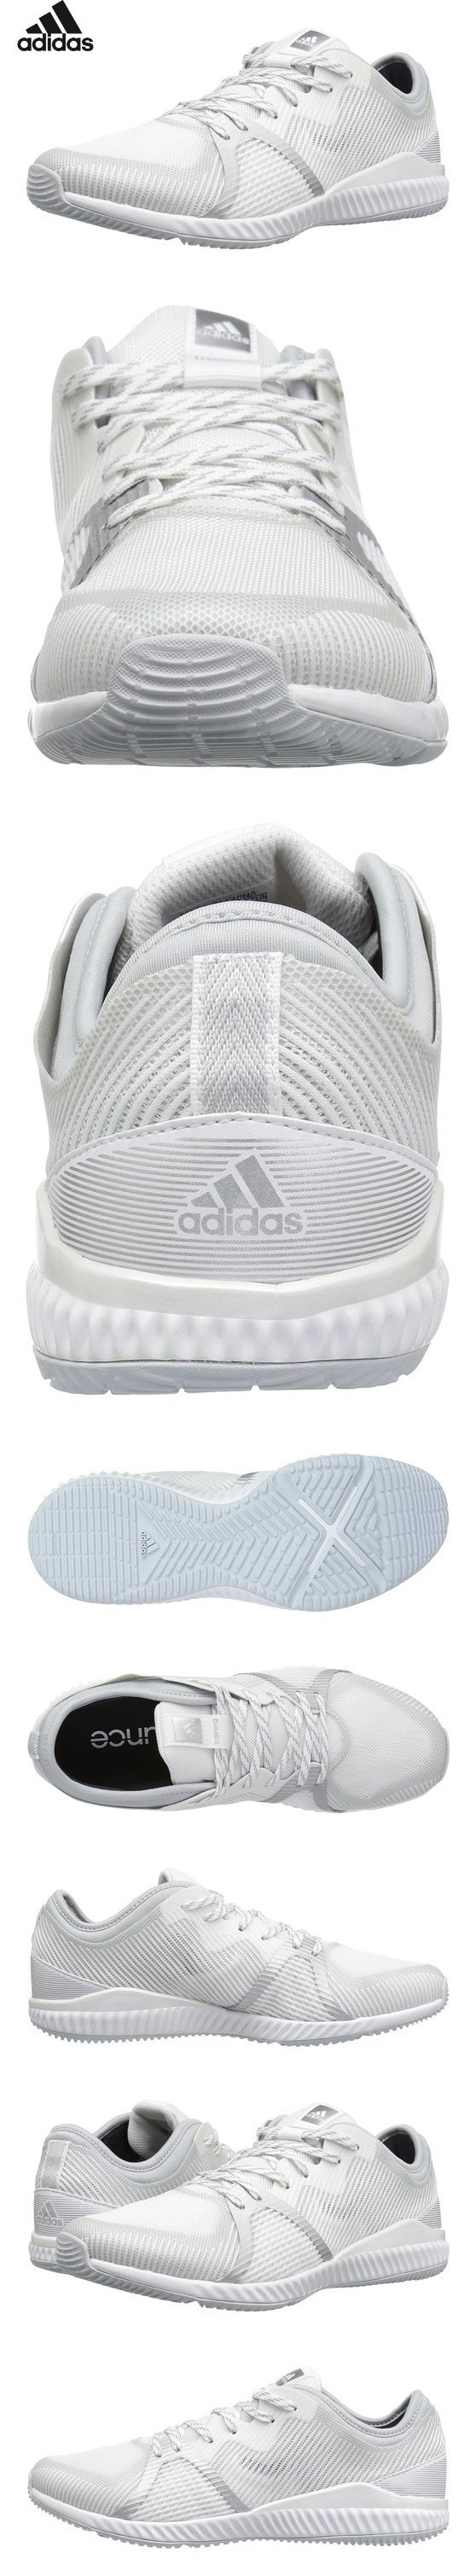 online store 4d311 9a36a  54.99 - adidas Performance Women s Crazytrain Bounce W Cross-Trainer Shoe,  White Metallic Silver Clear Grey, 7.5 M US